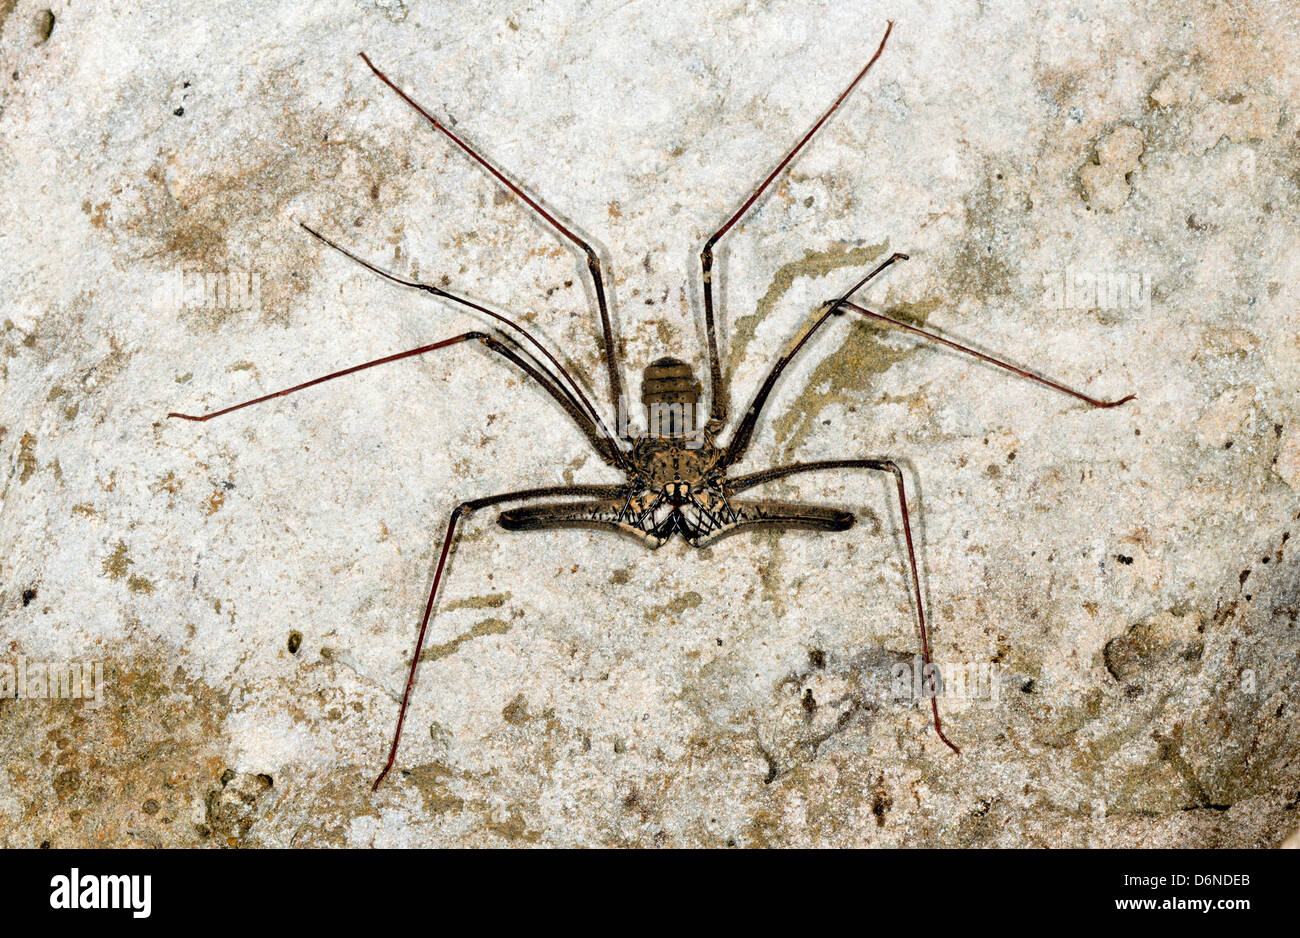 Tailless whipscorpion (Amblypigid) on a grungy cave wall, Ecuador - Stock Image